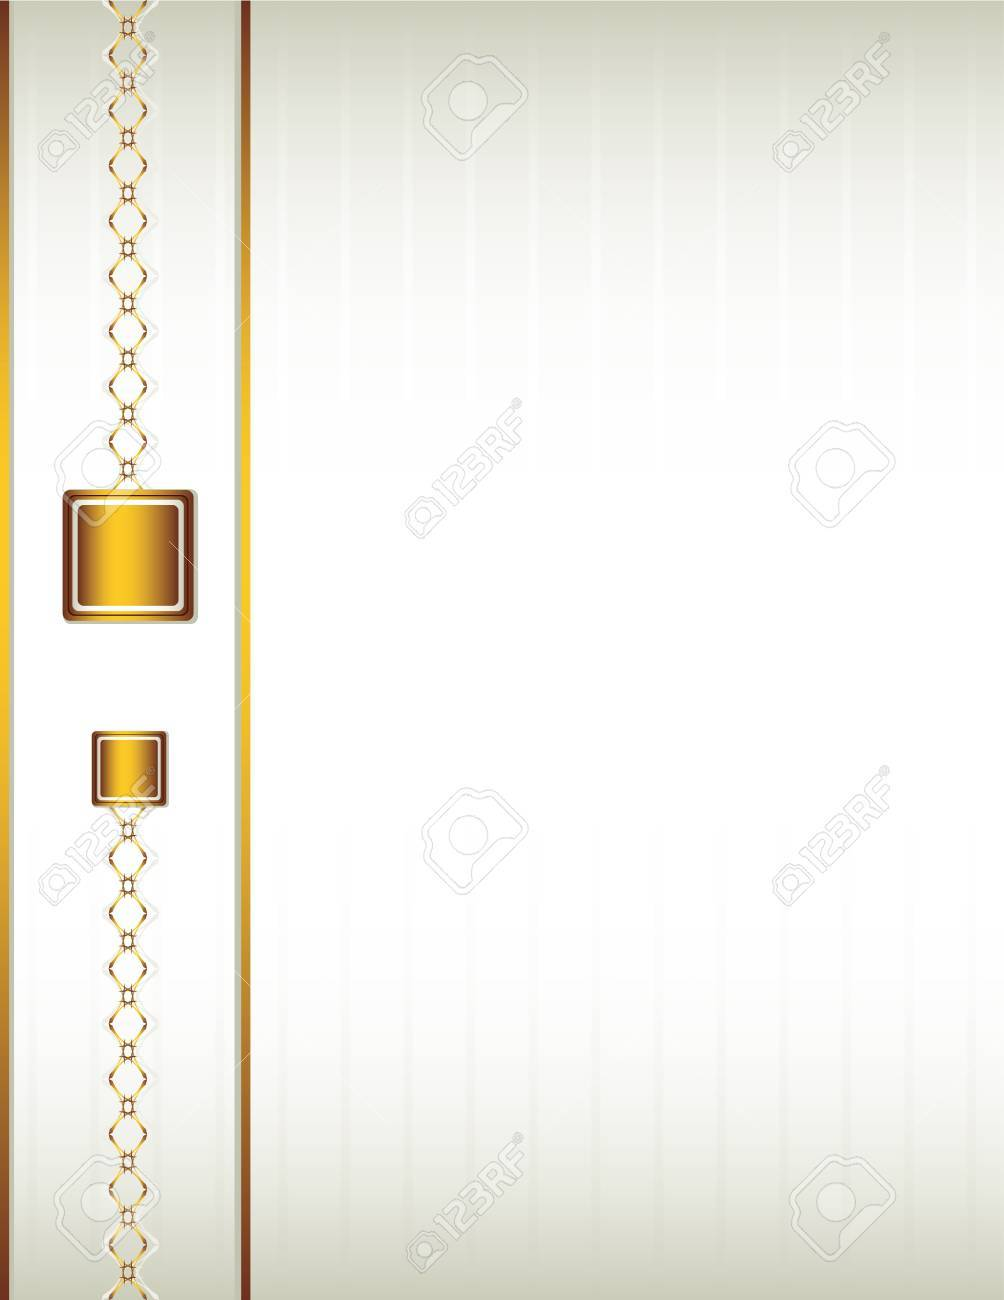 Cream background with a gold design including chain-like elements Stock Vector - 7315159